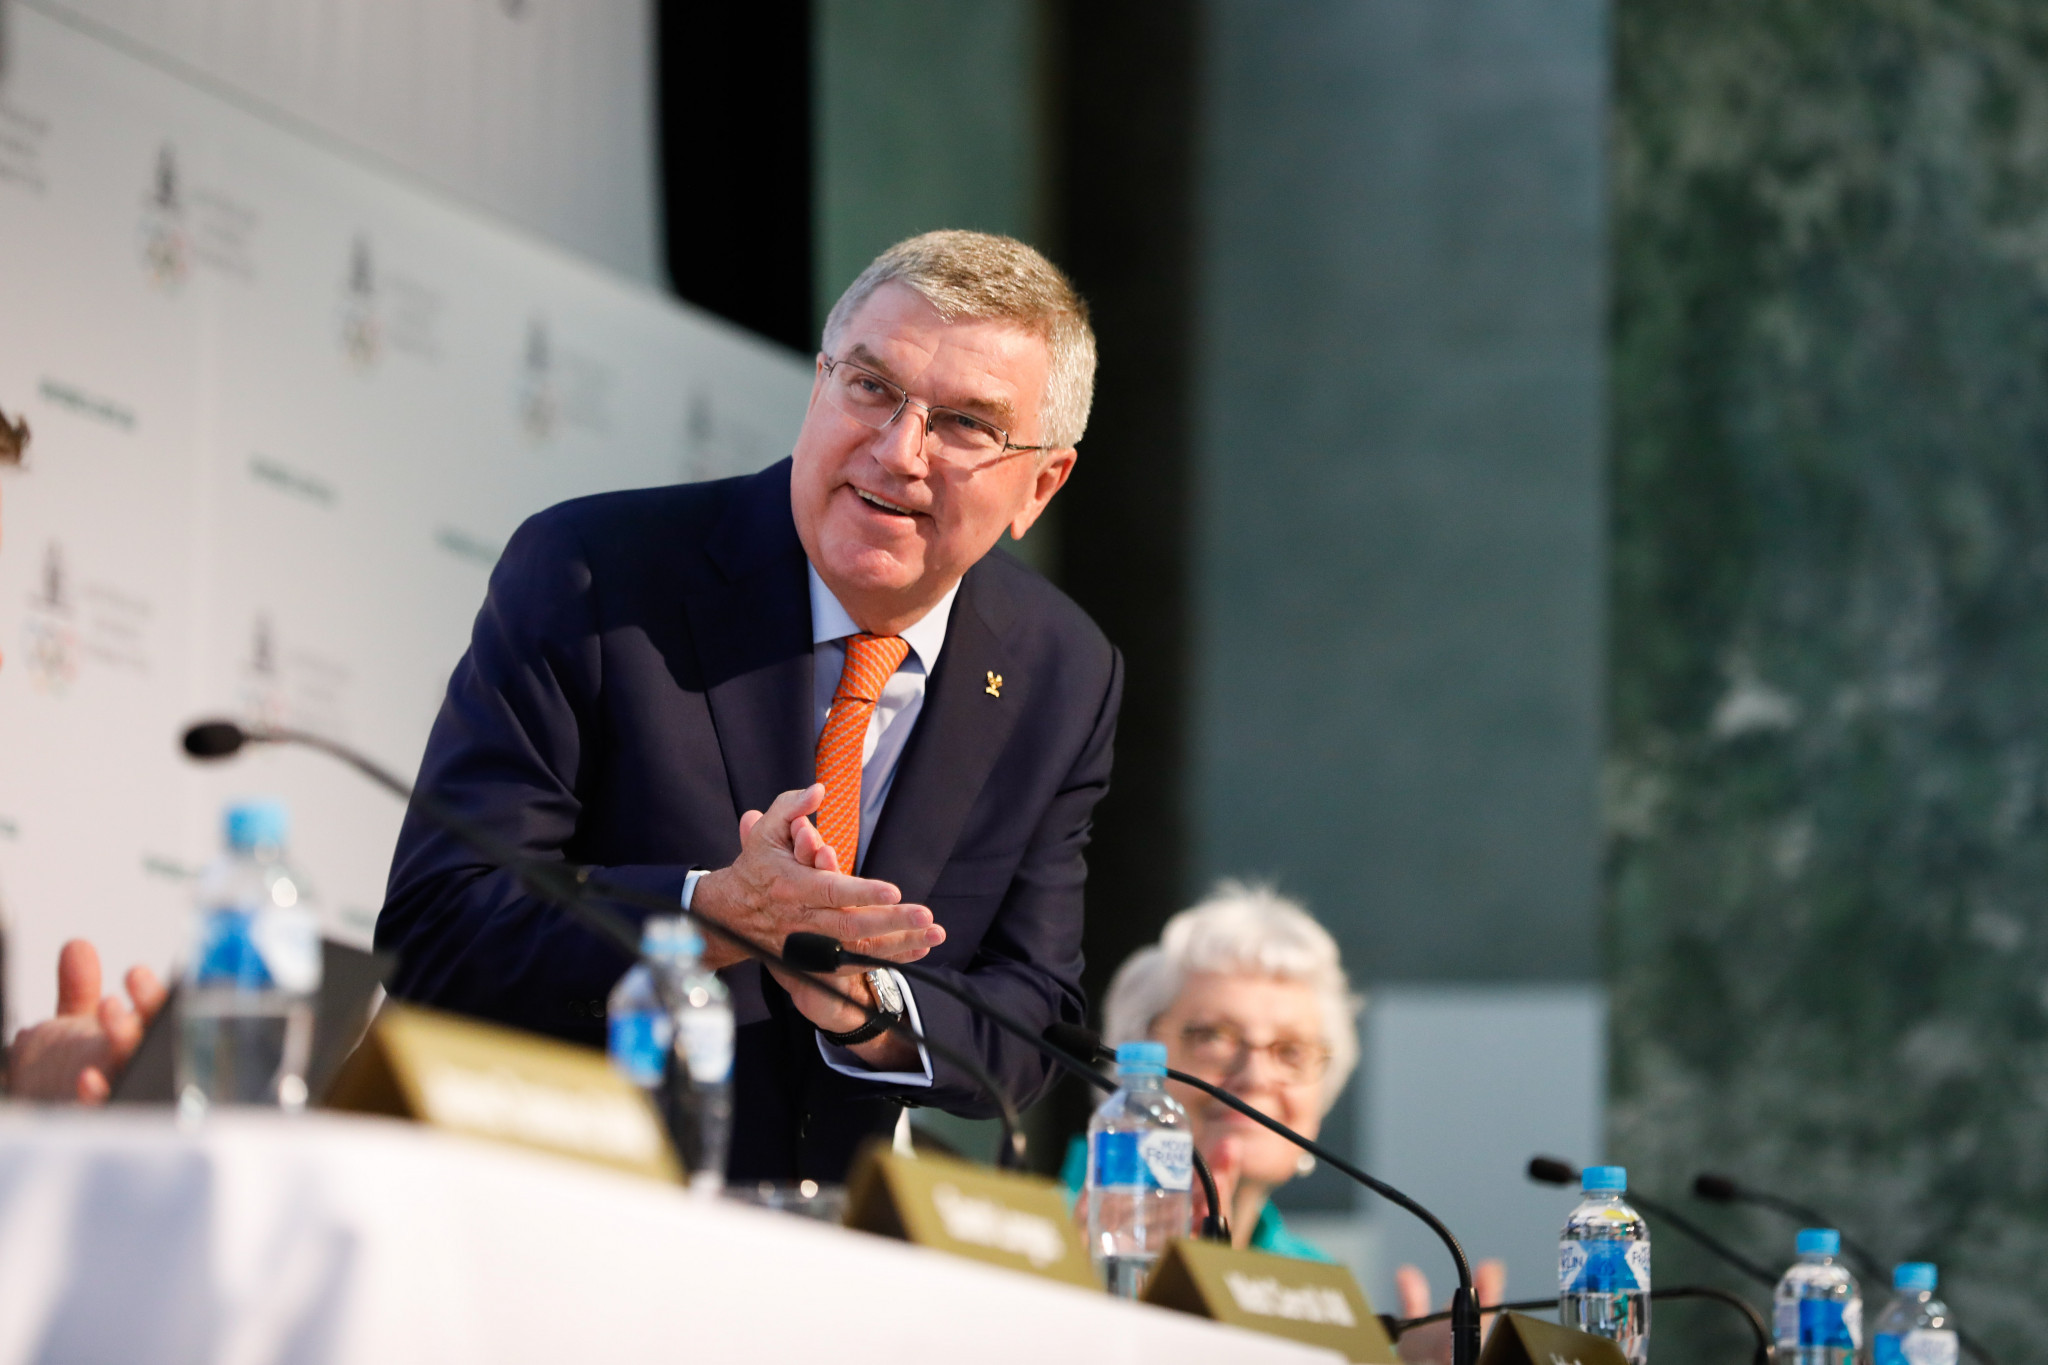 International Olympic Committee President Thomas Bach will attend the World Taekwondo Championships tomorrow ©Getty Images